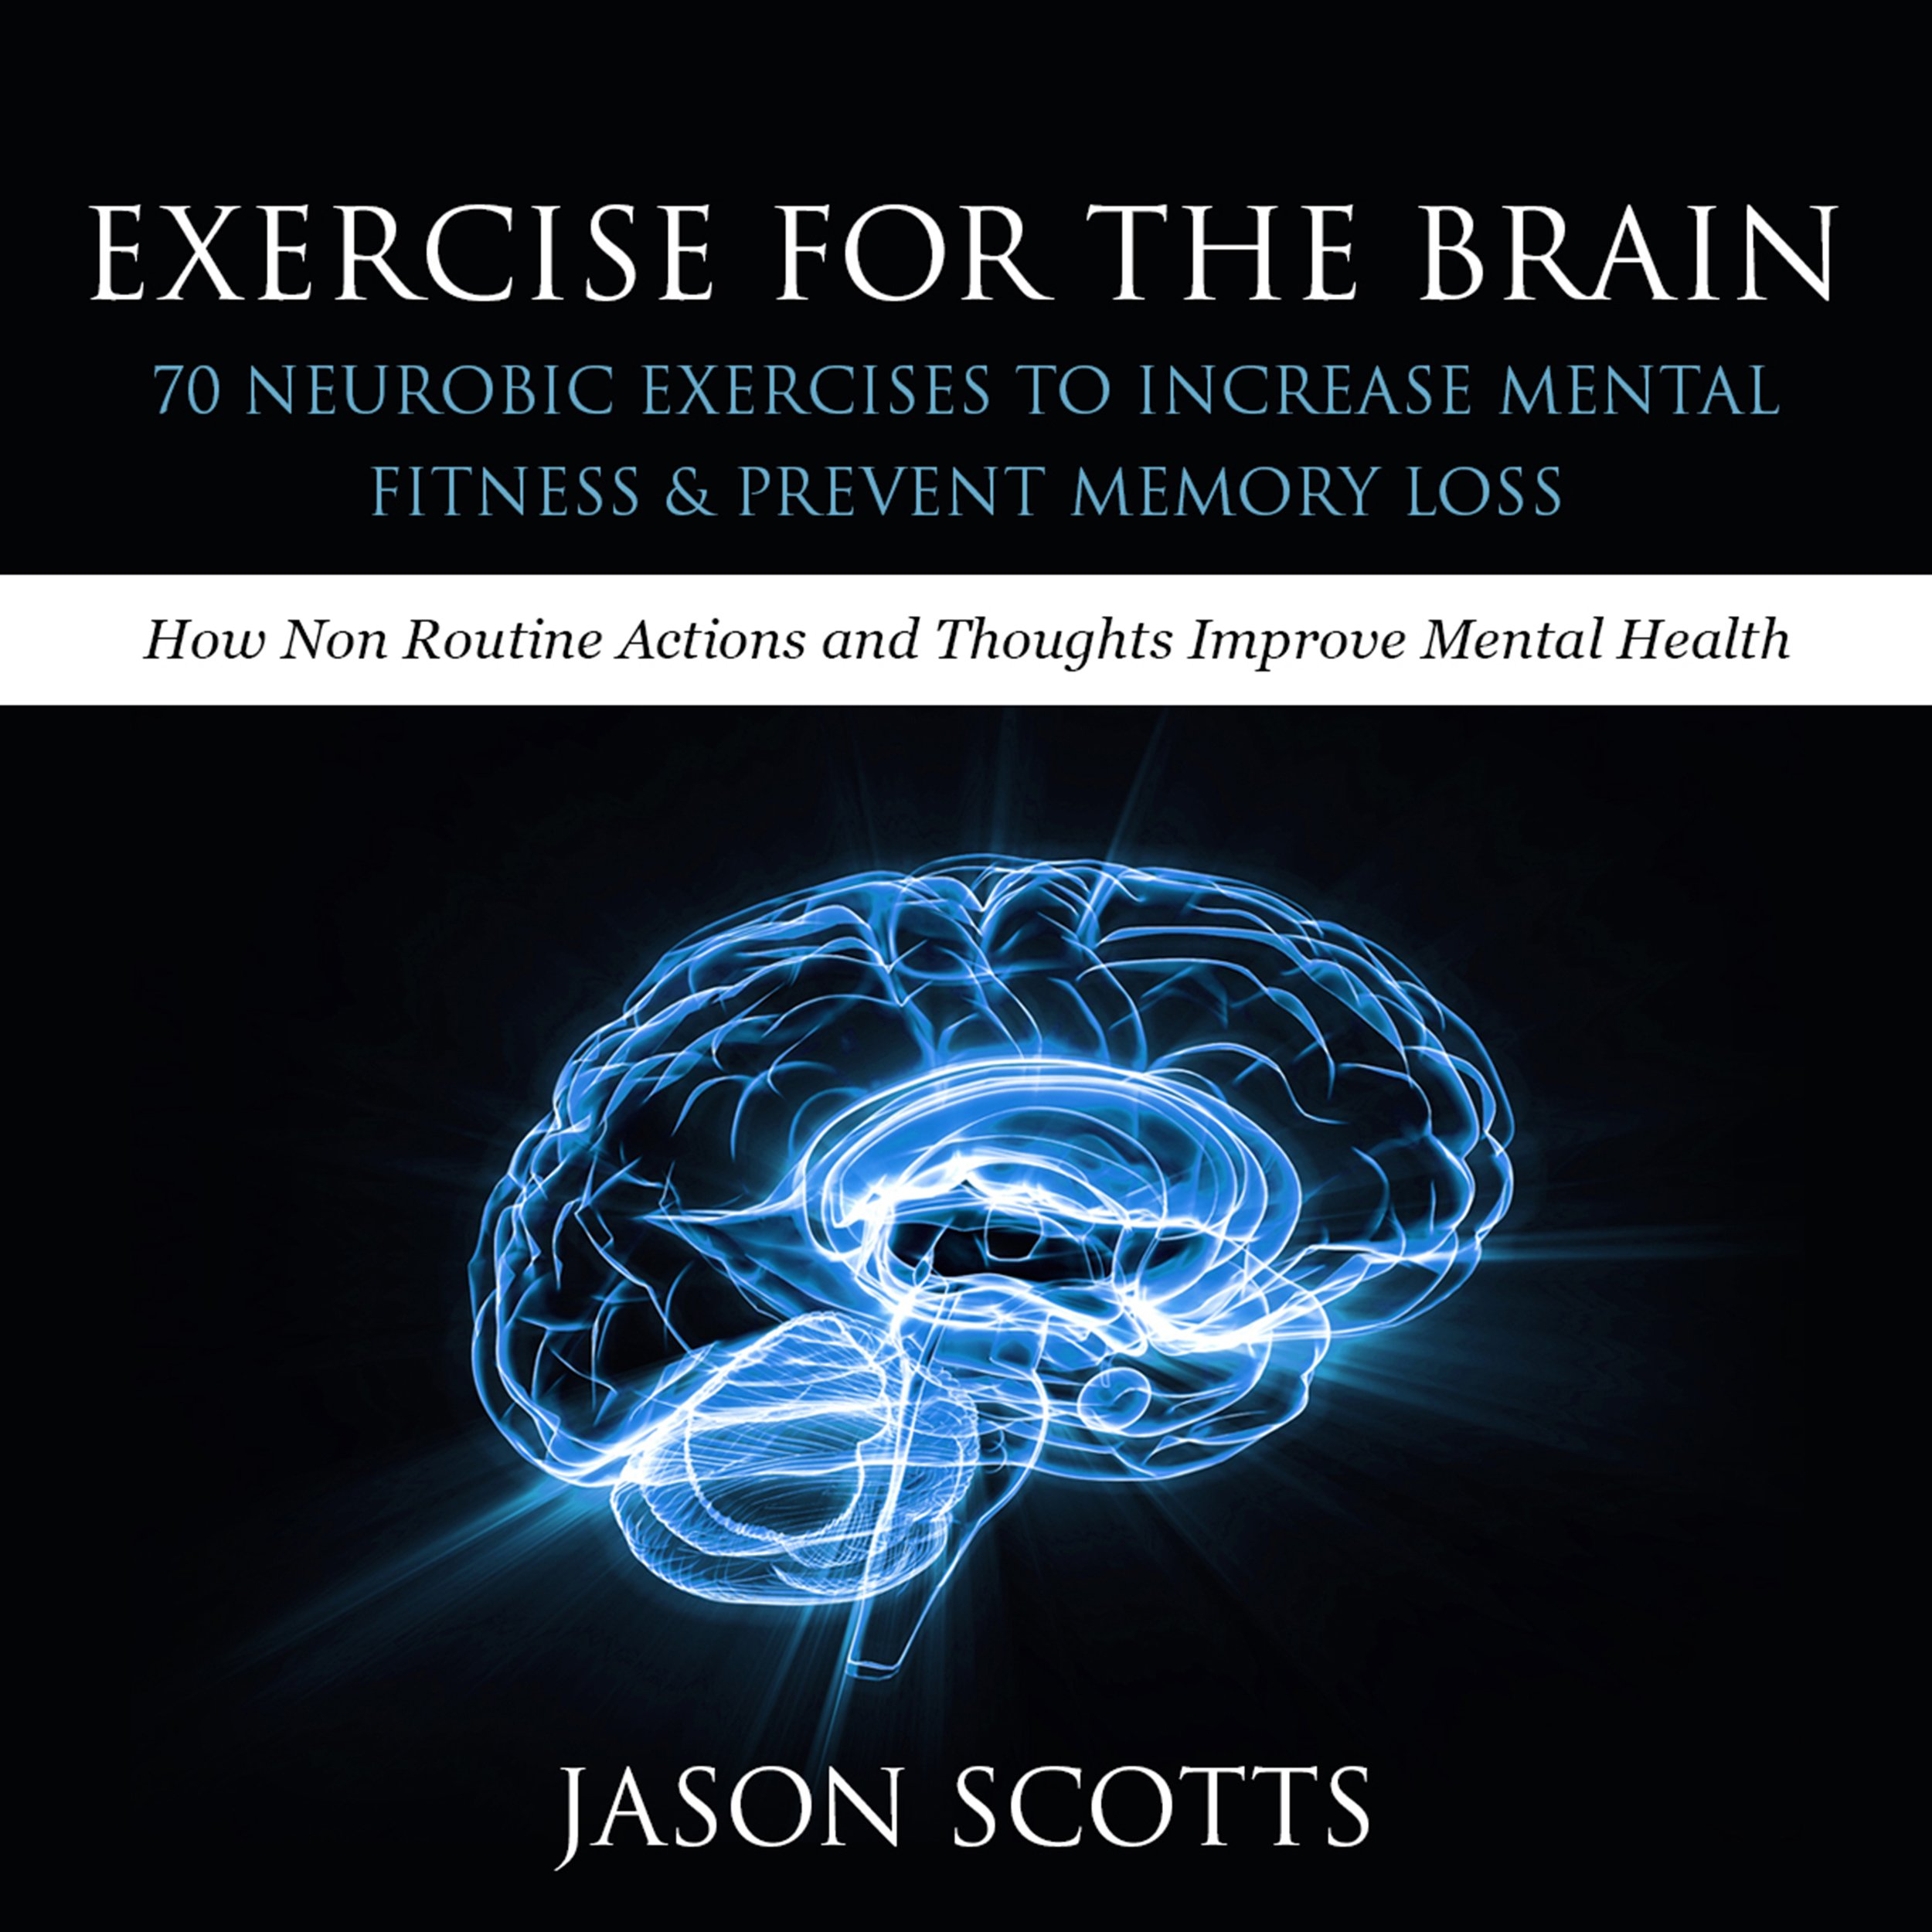 Exercise for the Brain: 70 Neurobic Exercises to Increase Mental Fitness Prevent Memory Loss